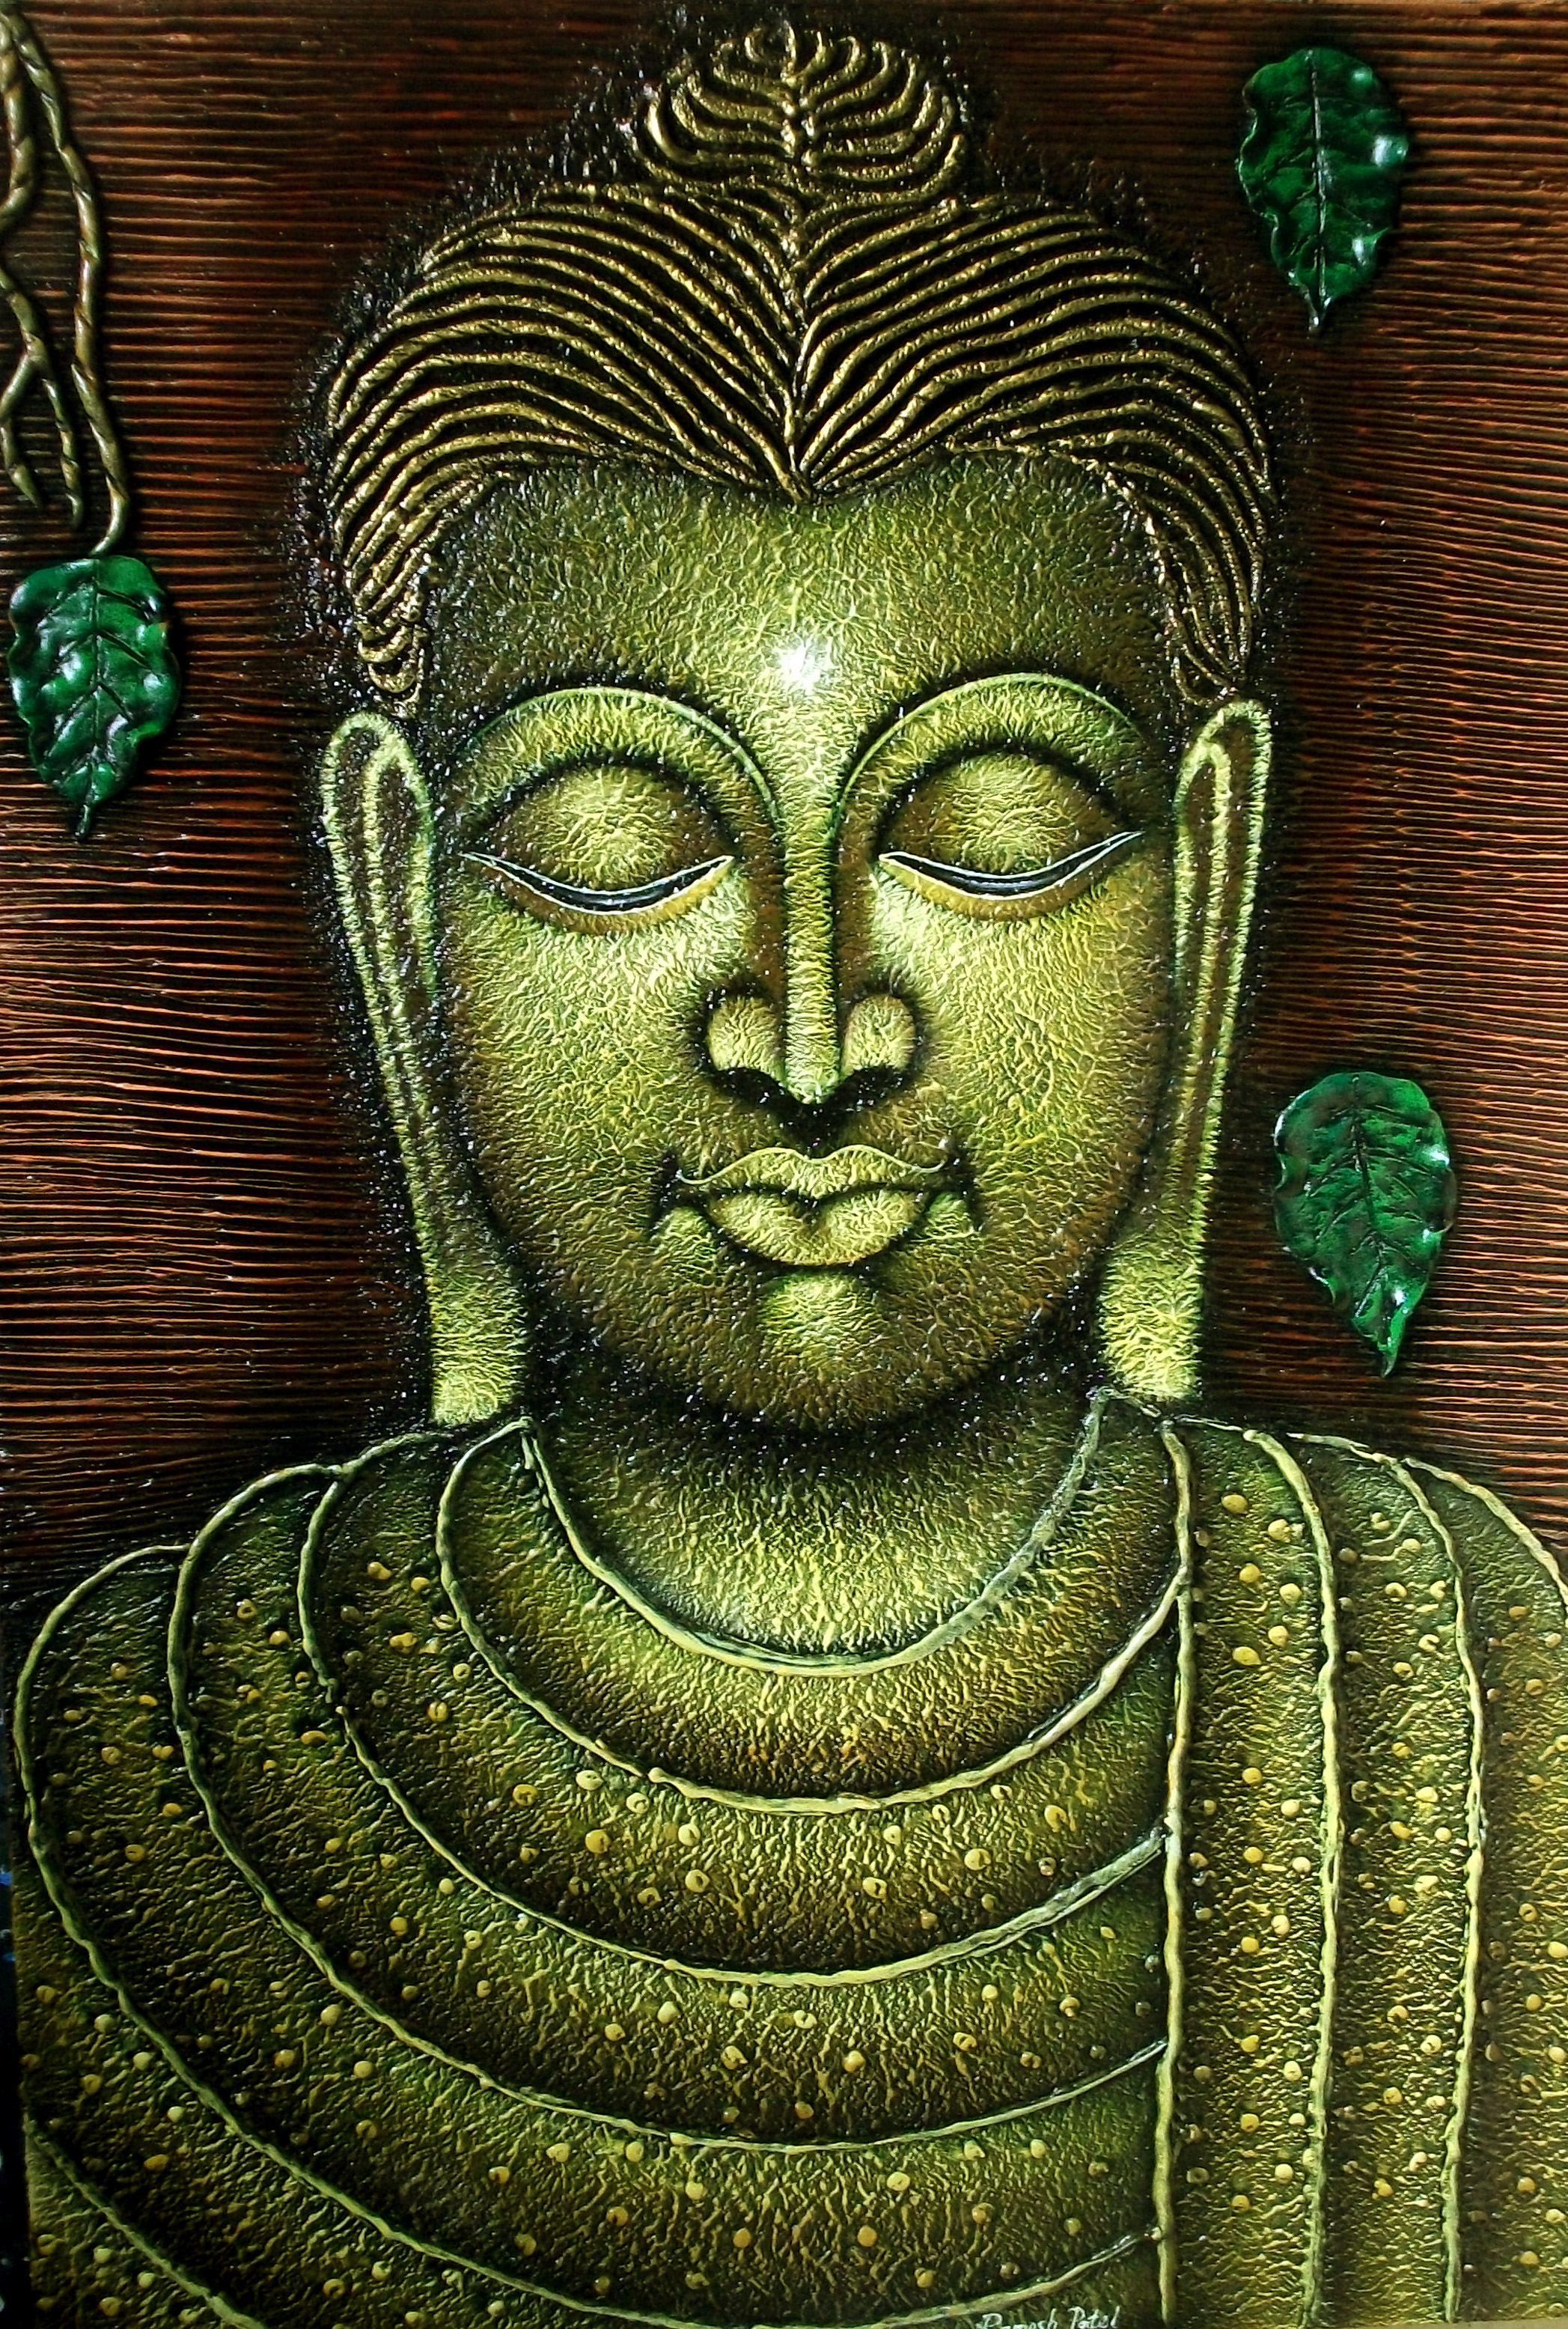 Lord Buddha with Peepal leaf 9494